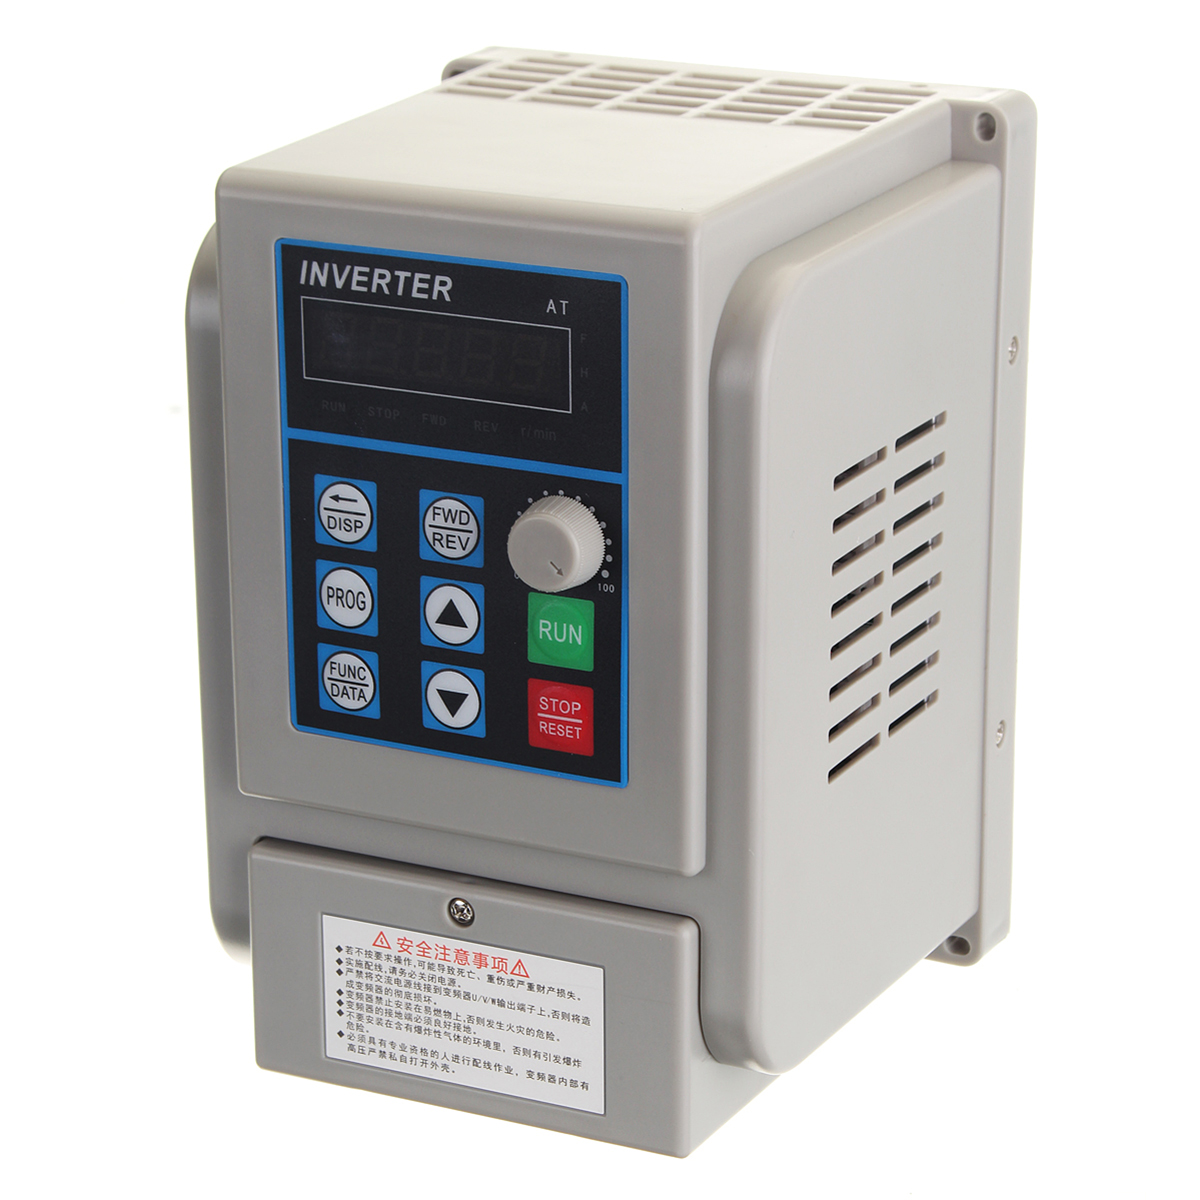 220V 2.2KW Single Phase input and 3 Phase Output Frequency Converter / Frequency Inverter /CNC Spindle motor speed control/ VFD